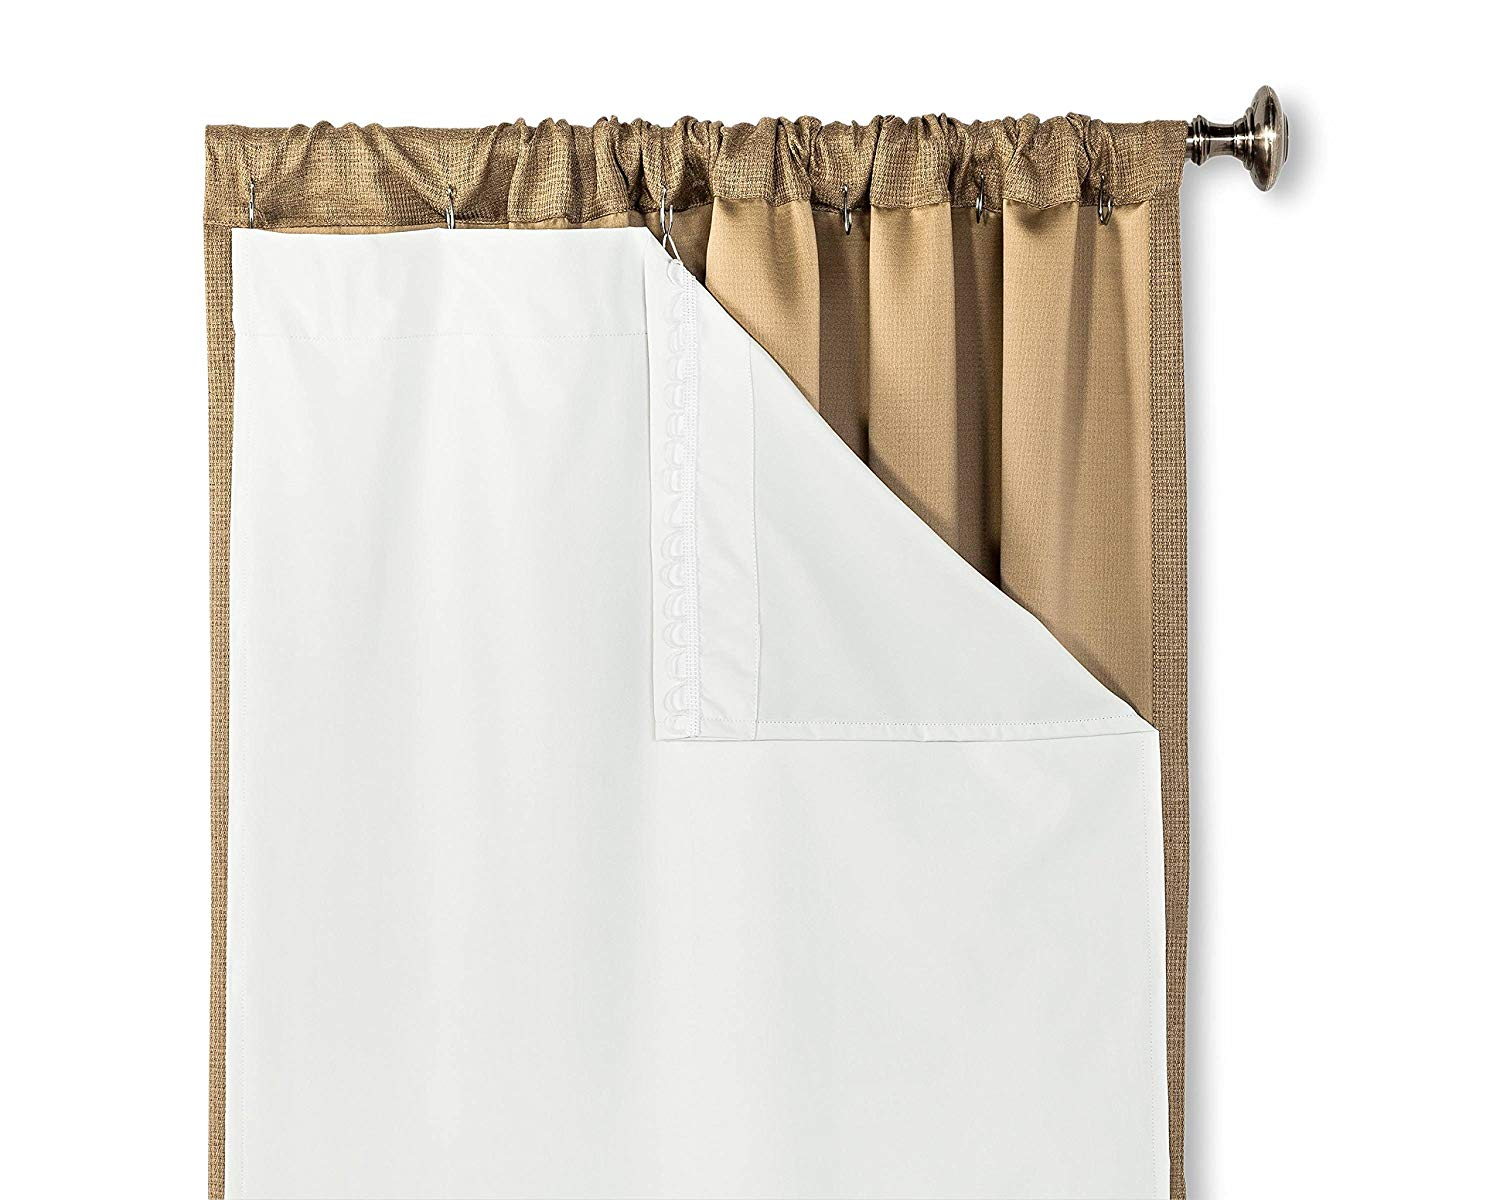 hlc me white thermal 100 blackout curtain rod pocket liner for complete darkness energy efficiency privacy